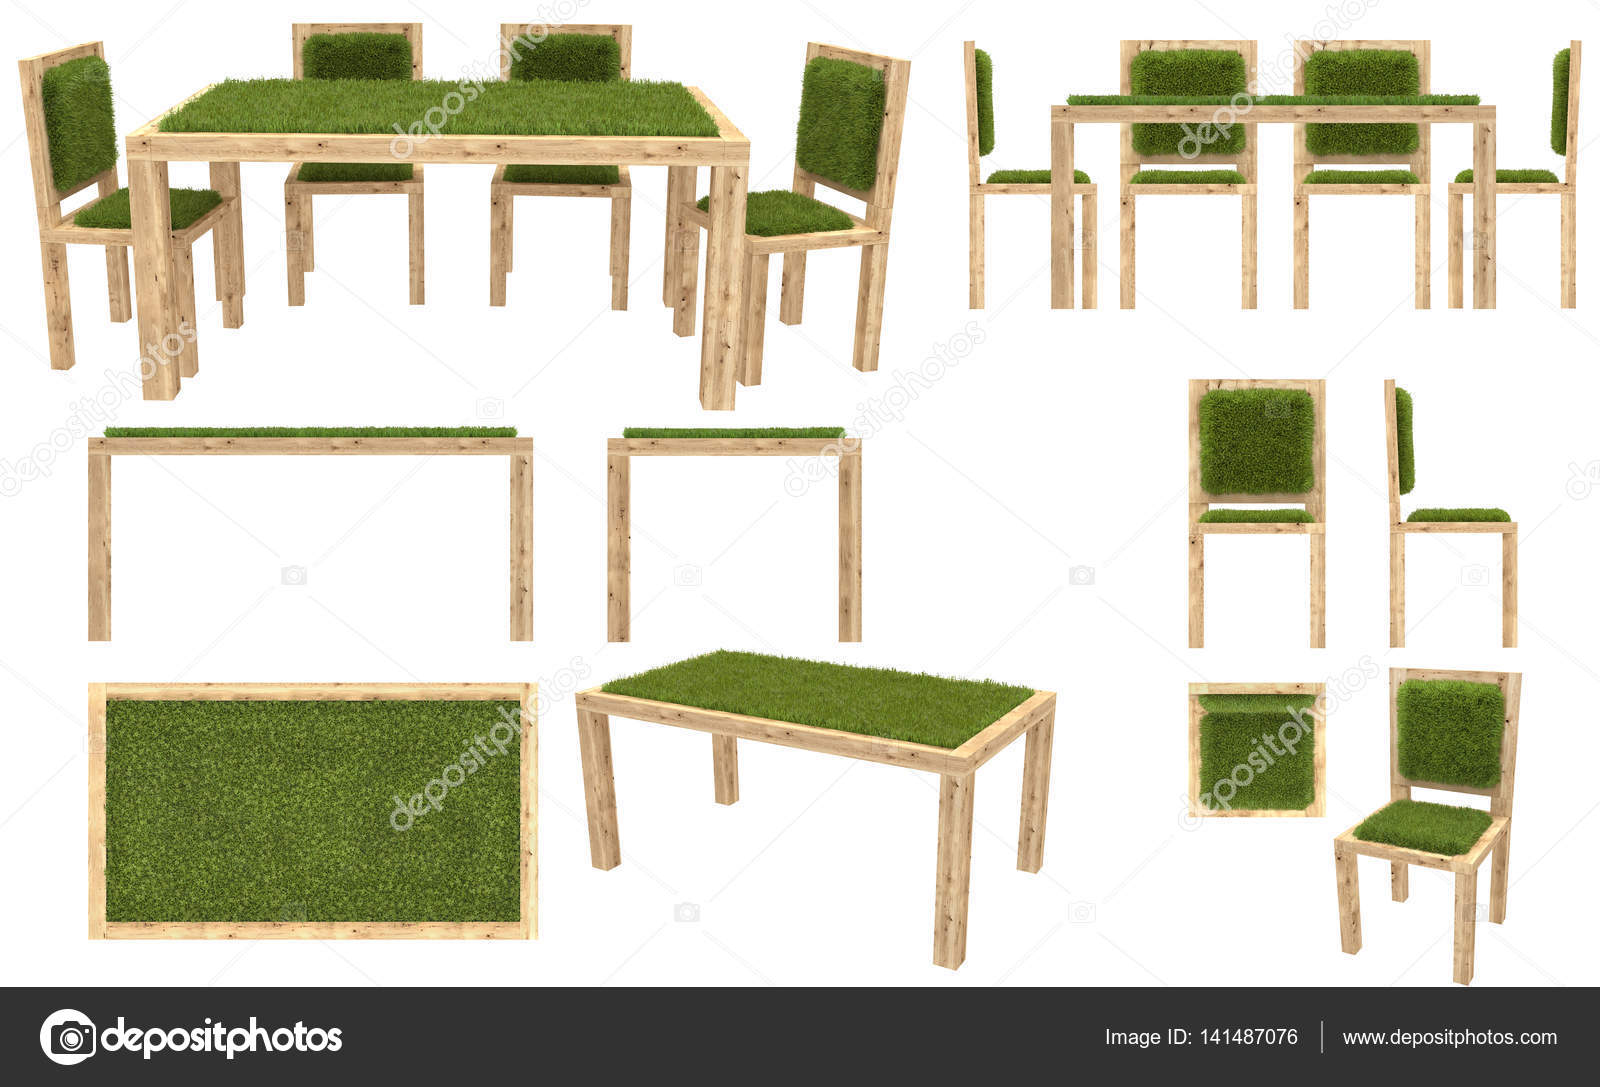 Wooden Table And Chairs With Grass Cover. Garden Furniture. Top View, Side  View